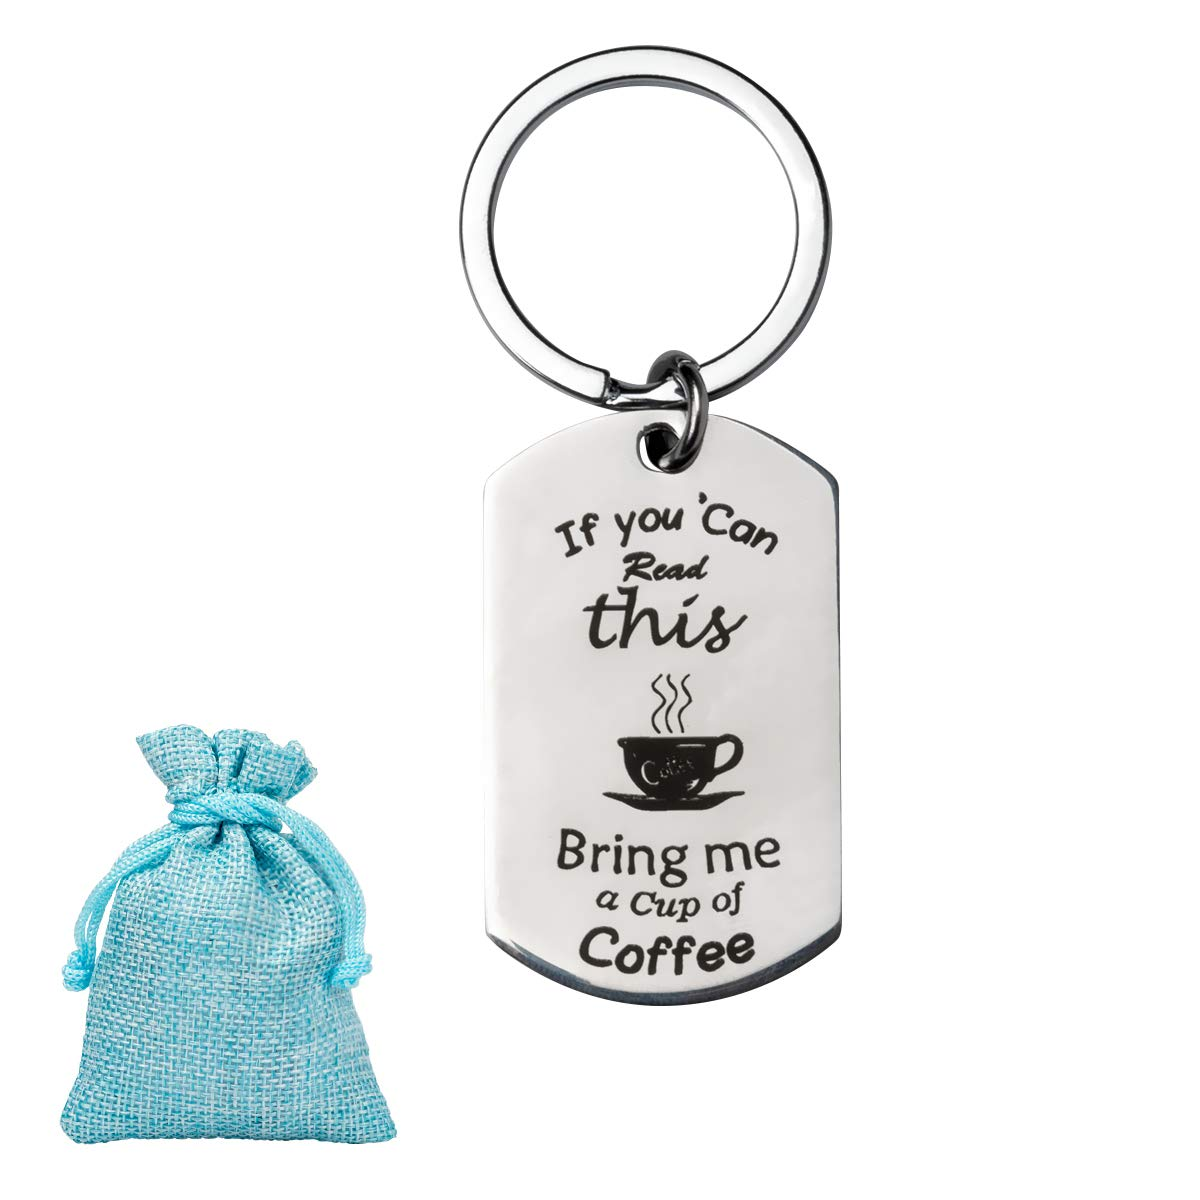 If You Can Read This, Bring Me Keychains - Beer, Wine, Coffee, Chocolate Theme - Funny Novelty Stainless Steel Key Chain Decoration Key Holder Ring Keys Organizer Gifts for Men and Women (Coffee)